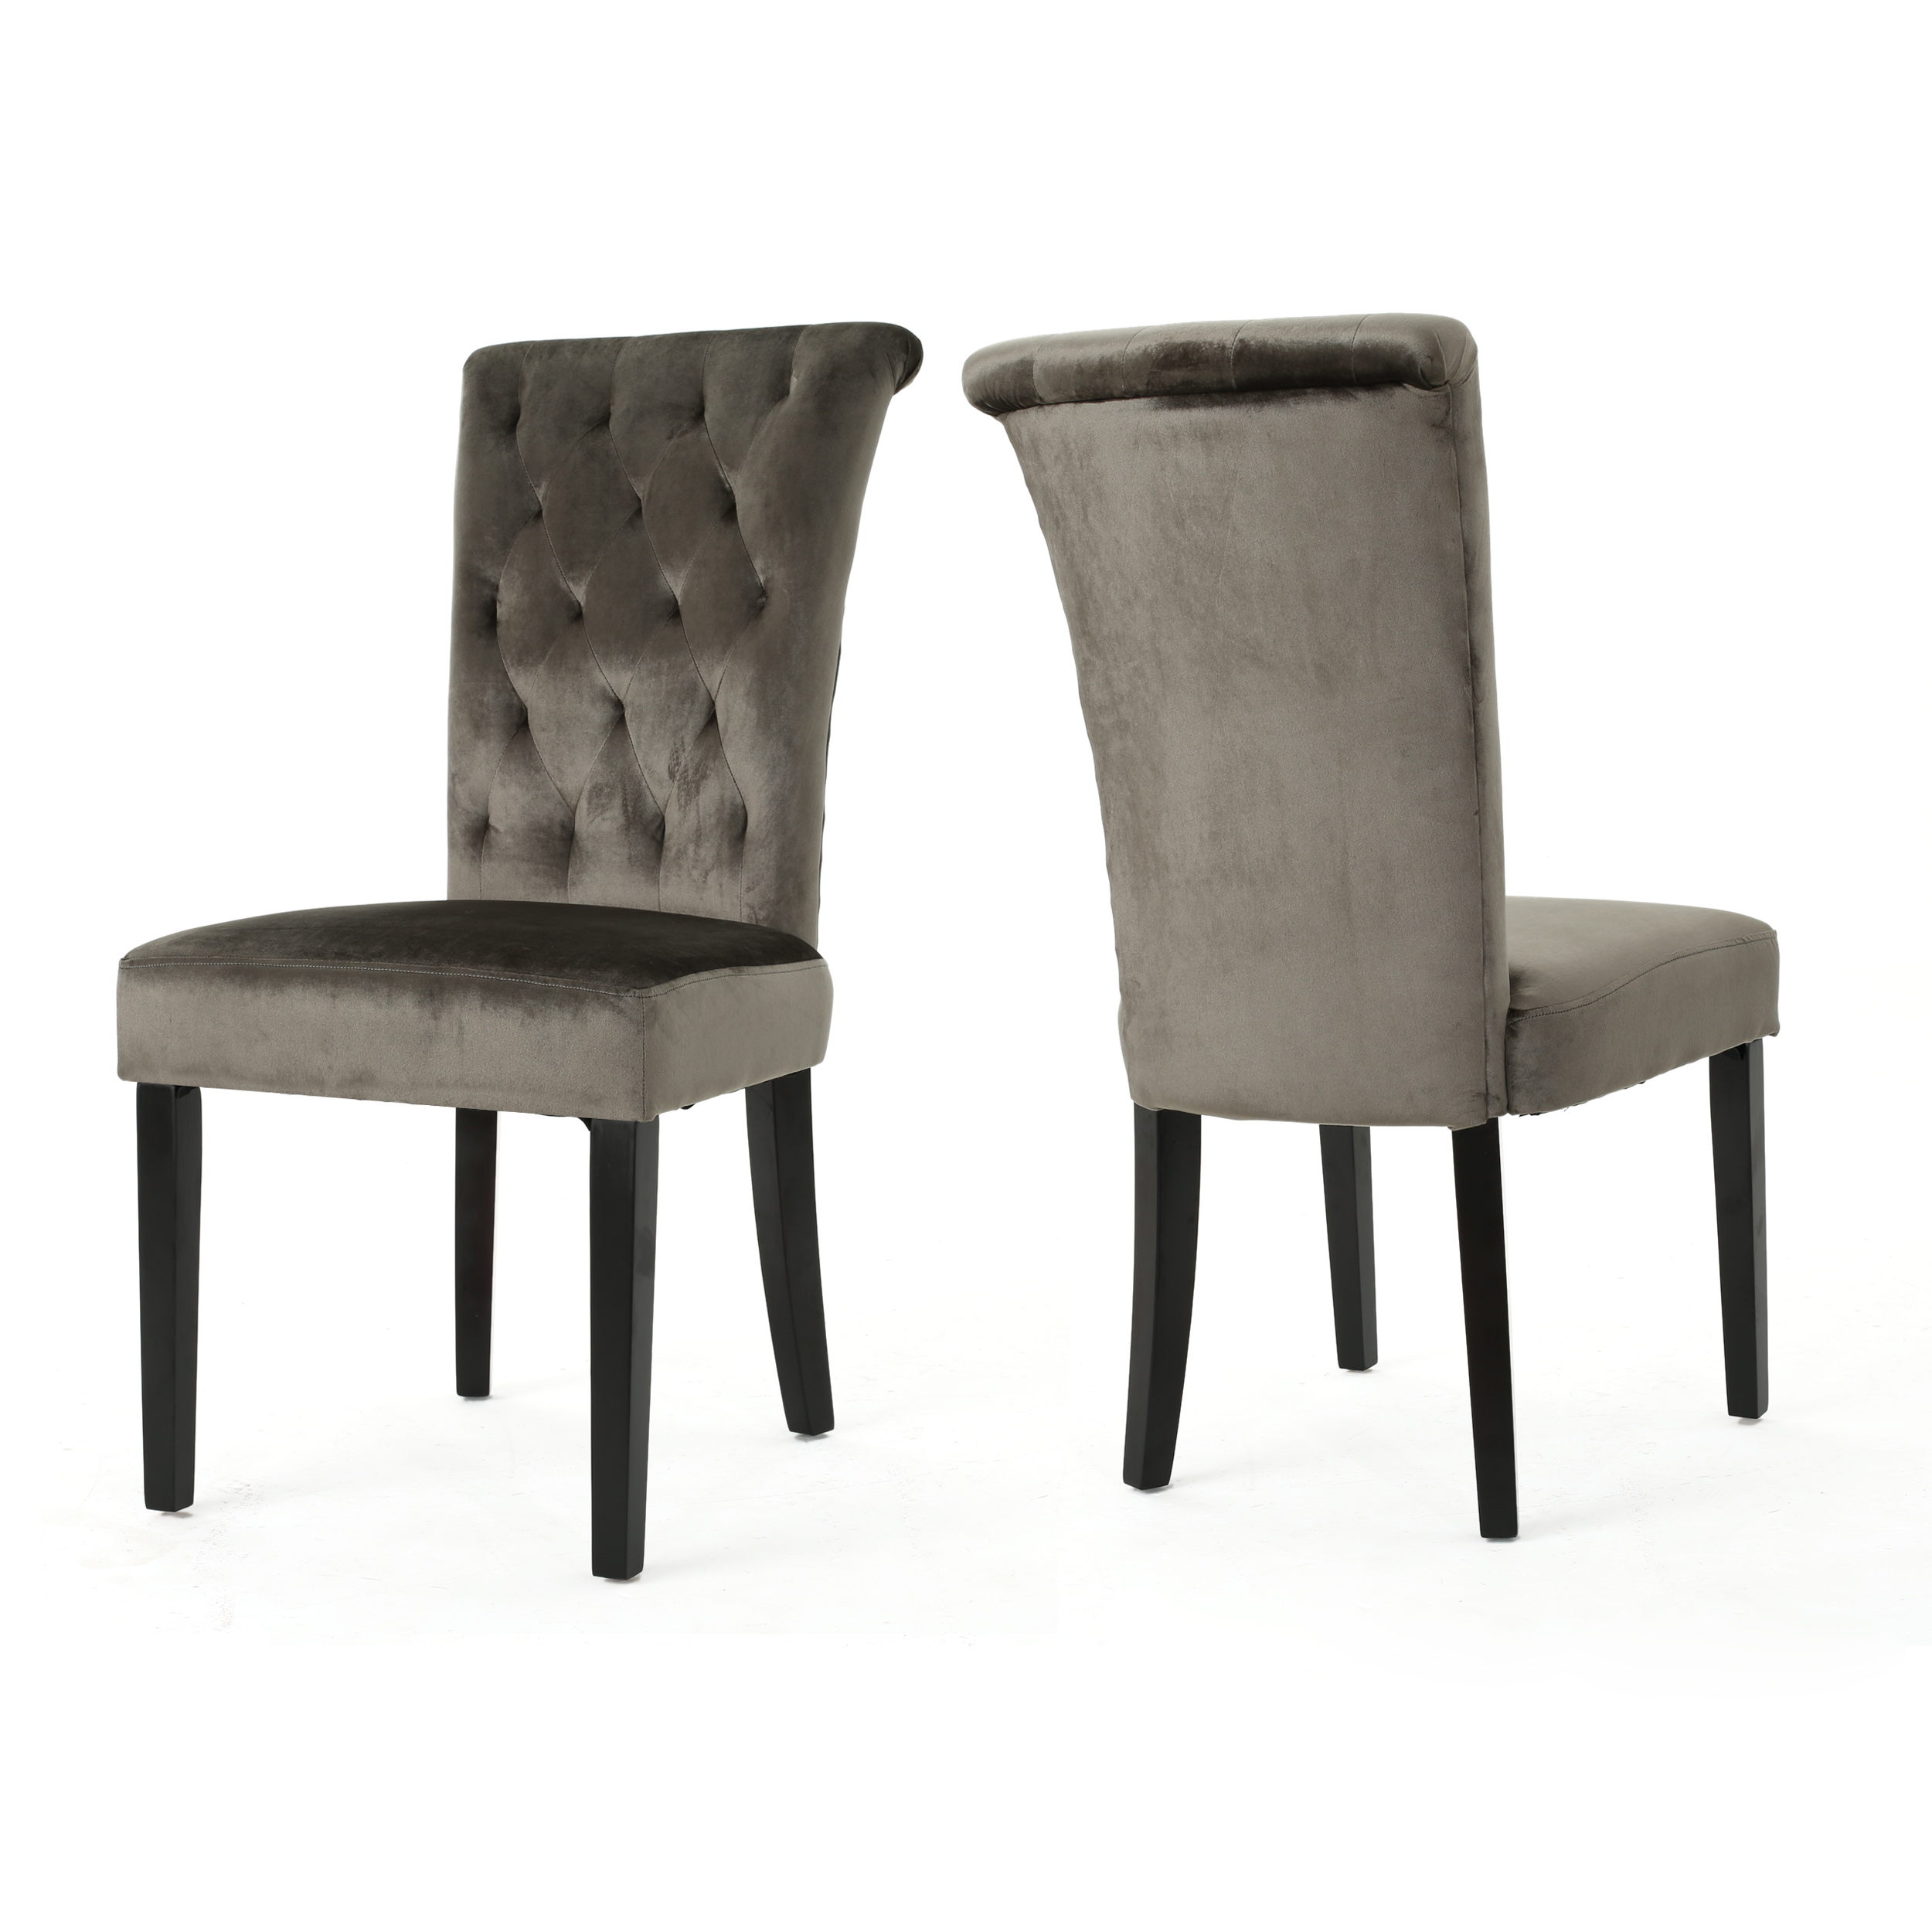 Details About Venus Tufted New Velvet Dining Chair Set Of 2